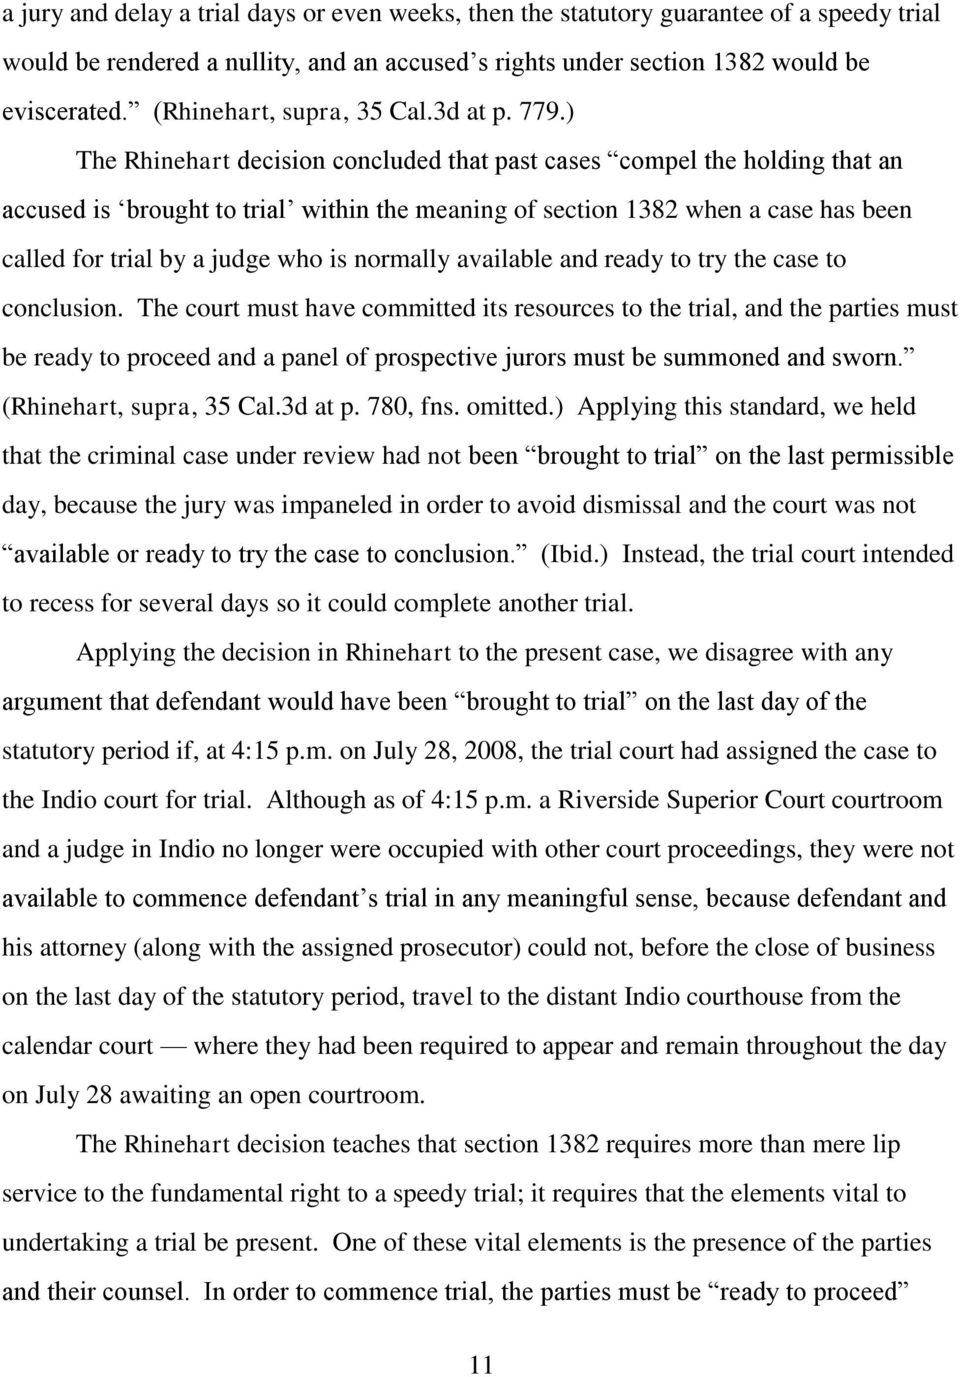 ) The Rhinehart decision concluded that past cases compel the holding that an accused is brought to trial within the meaning of section 1382 when a case has been called for trial by a judge who is